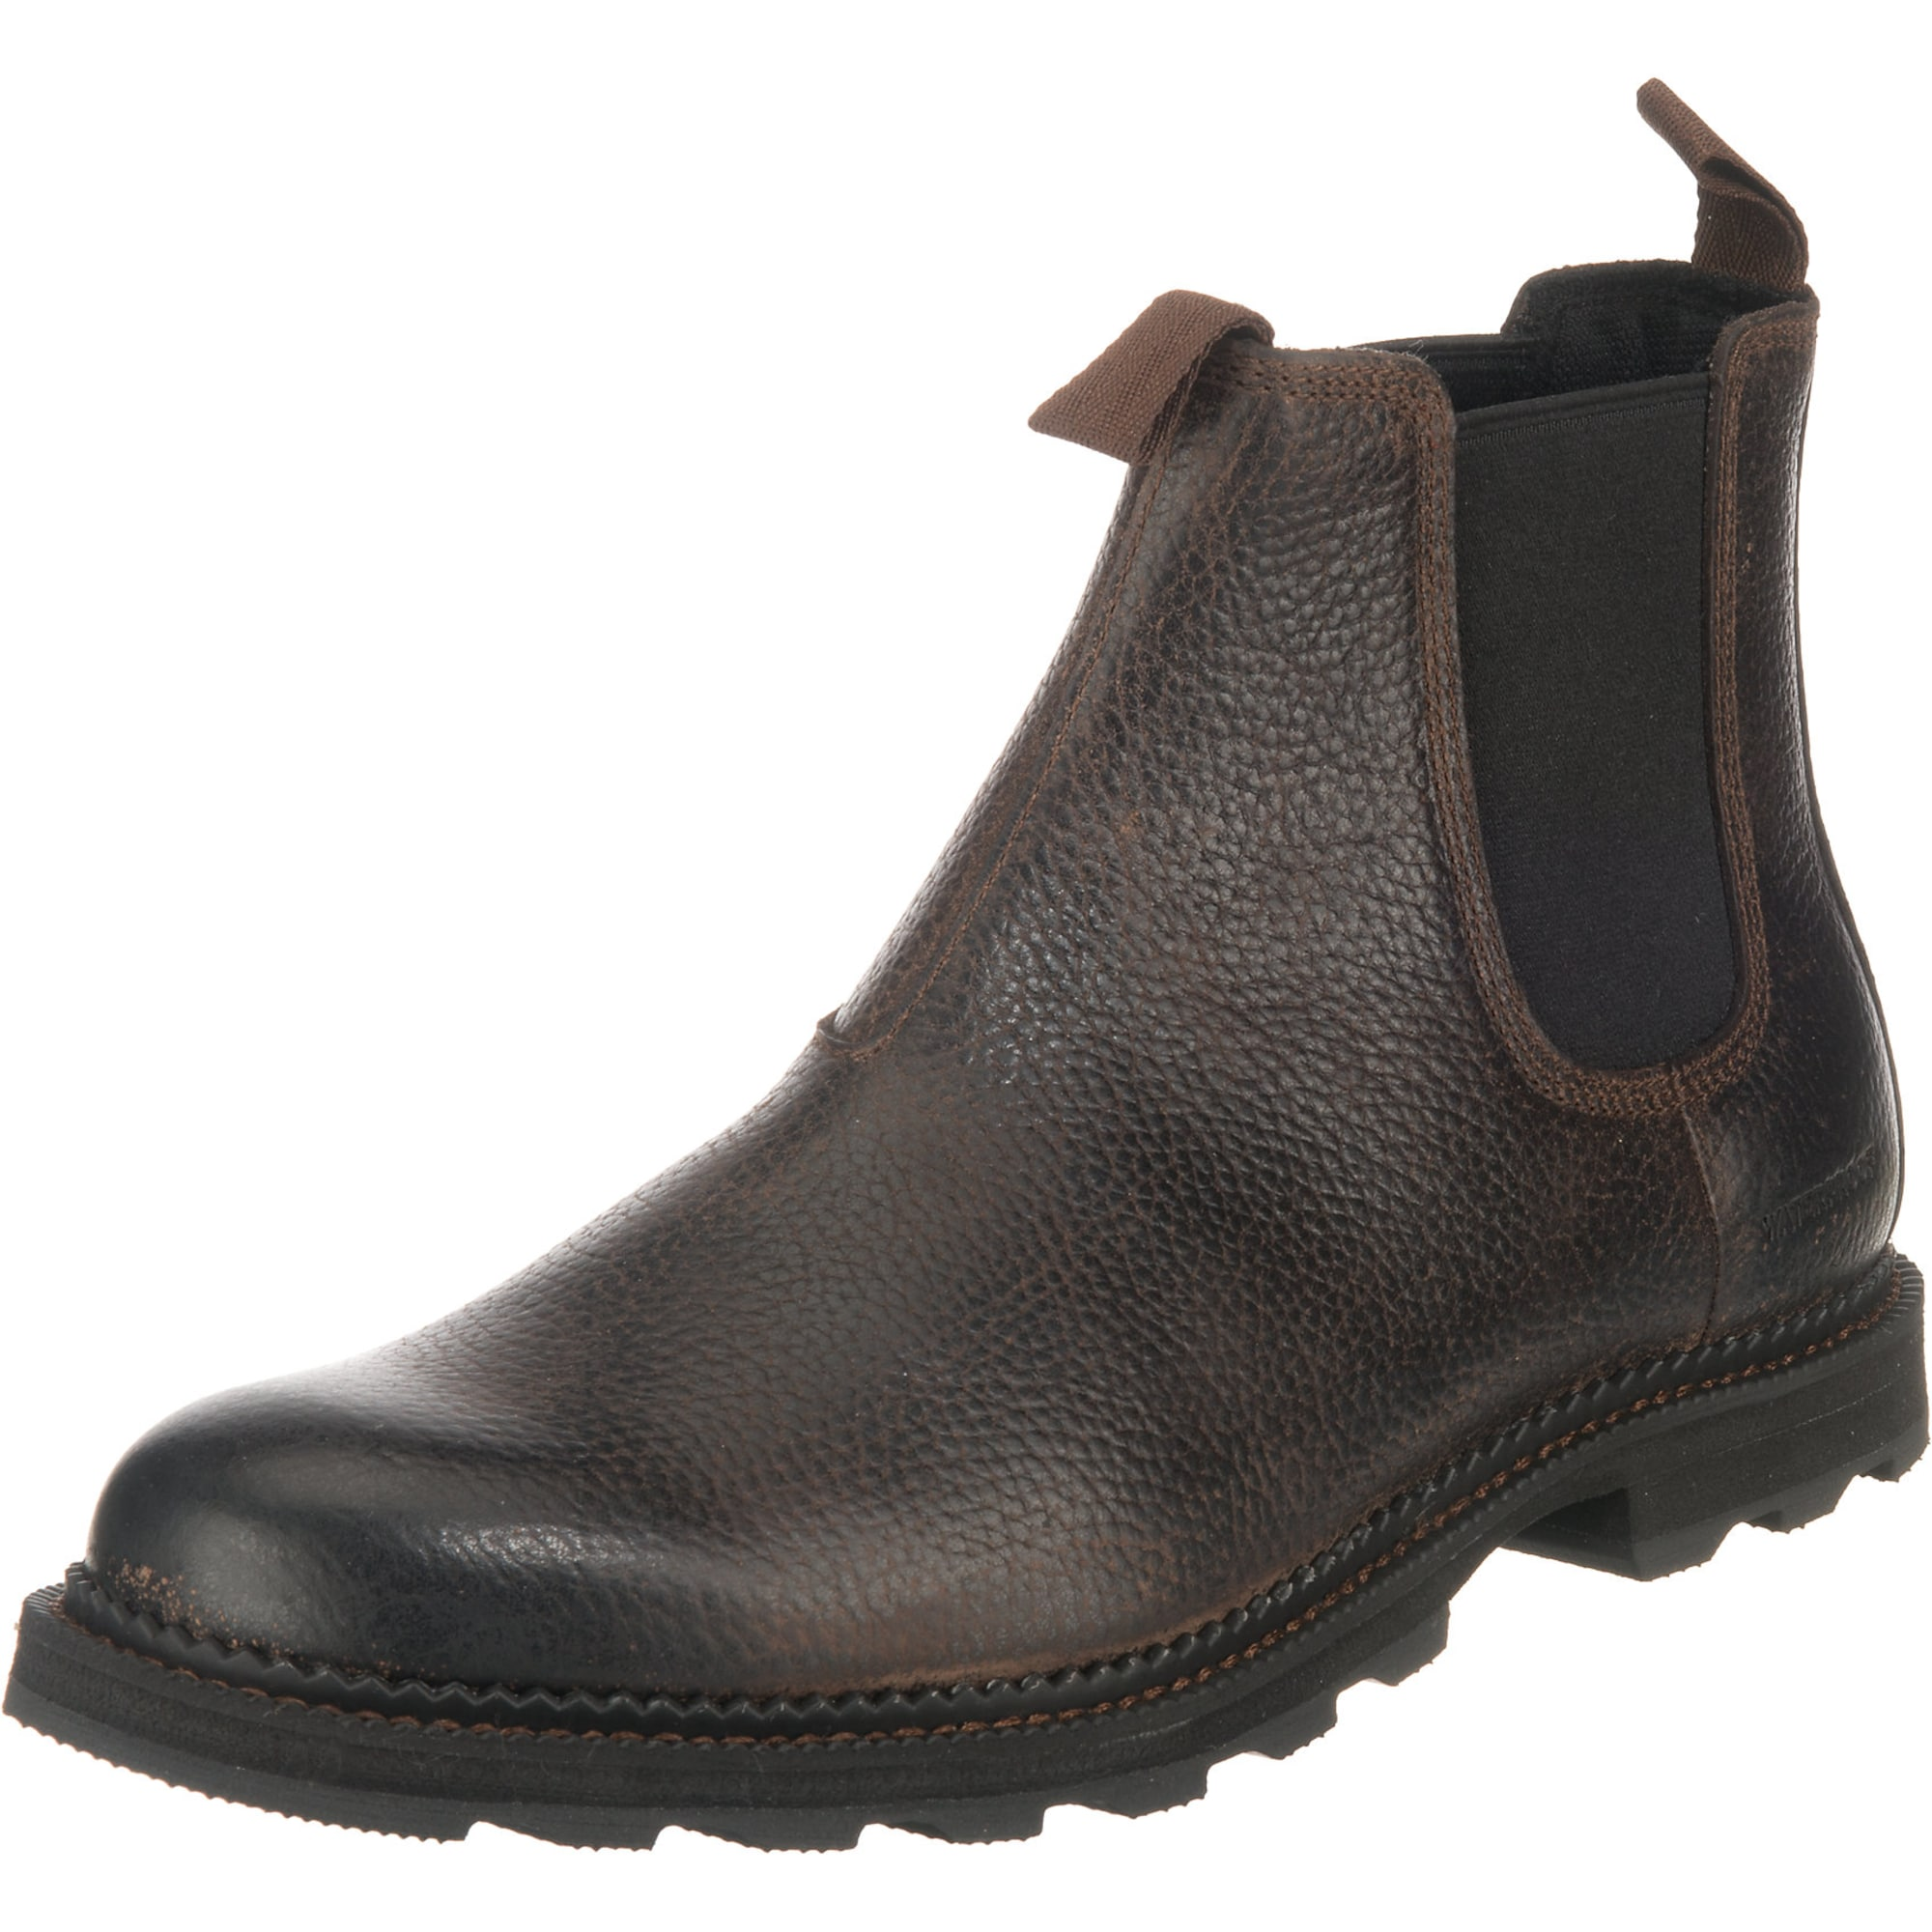 Chelsea Boots 'Madson' | Schuhe > Boots > Chelsea-Boots | Braun | Sorel